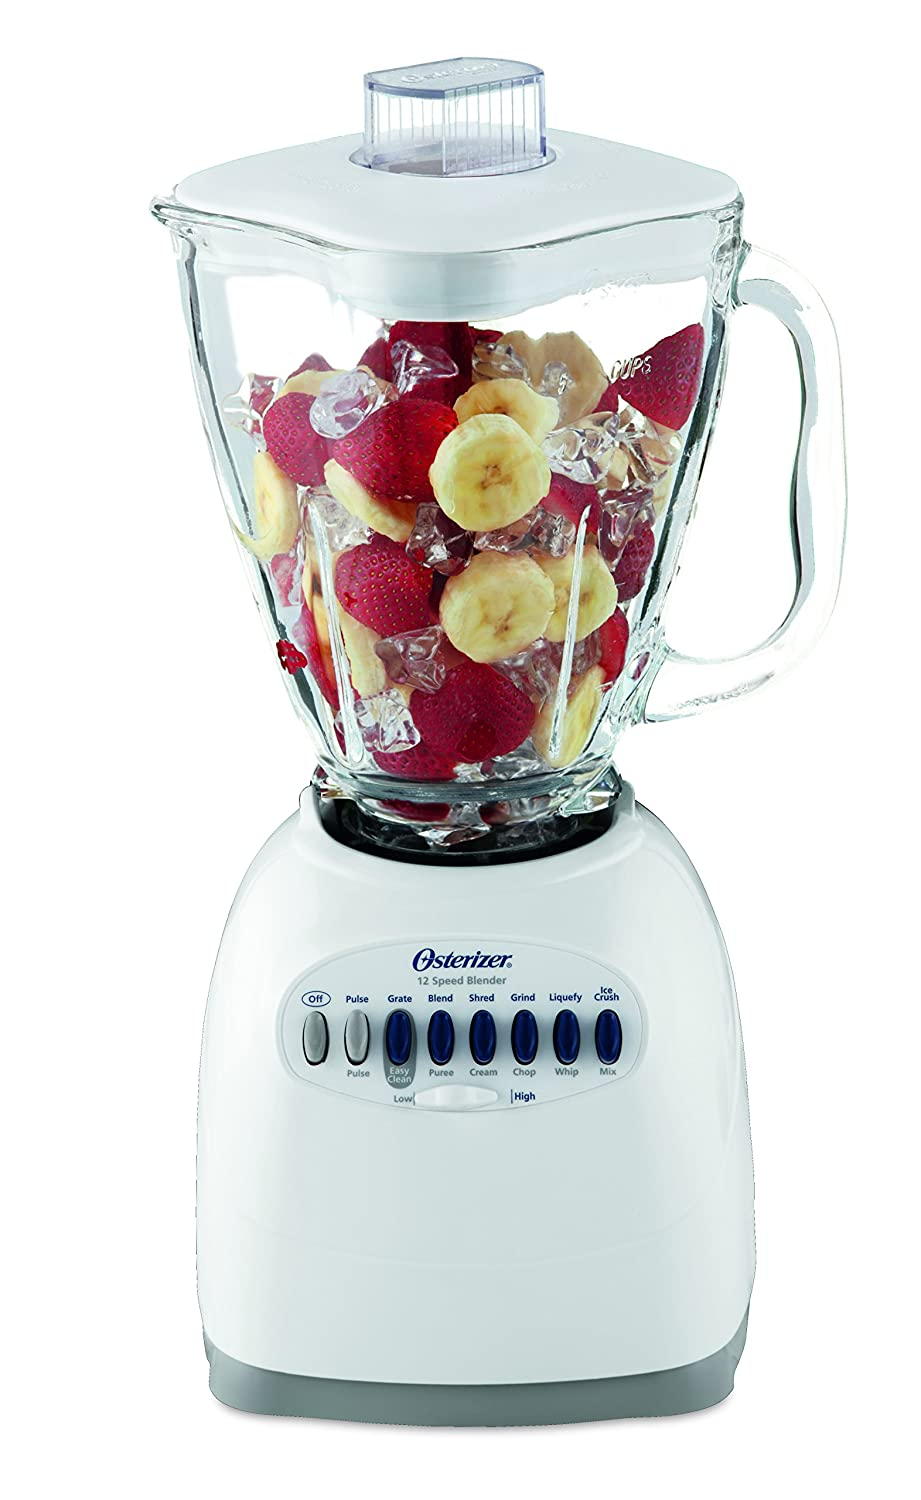 osterizer-12-speed-blender